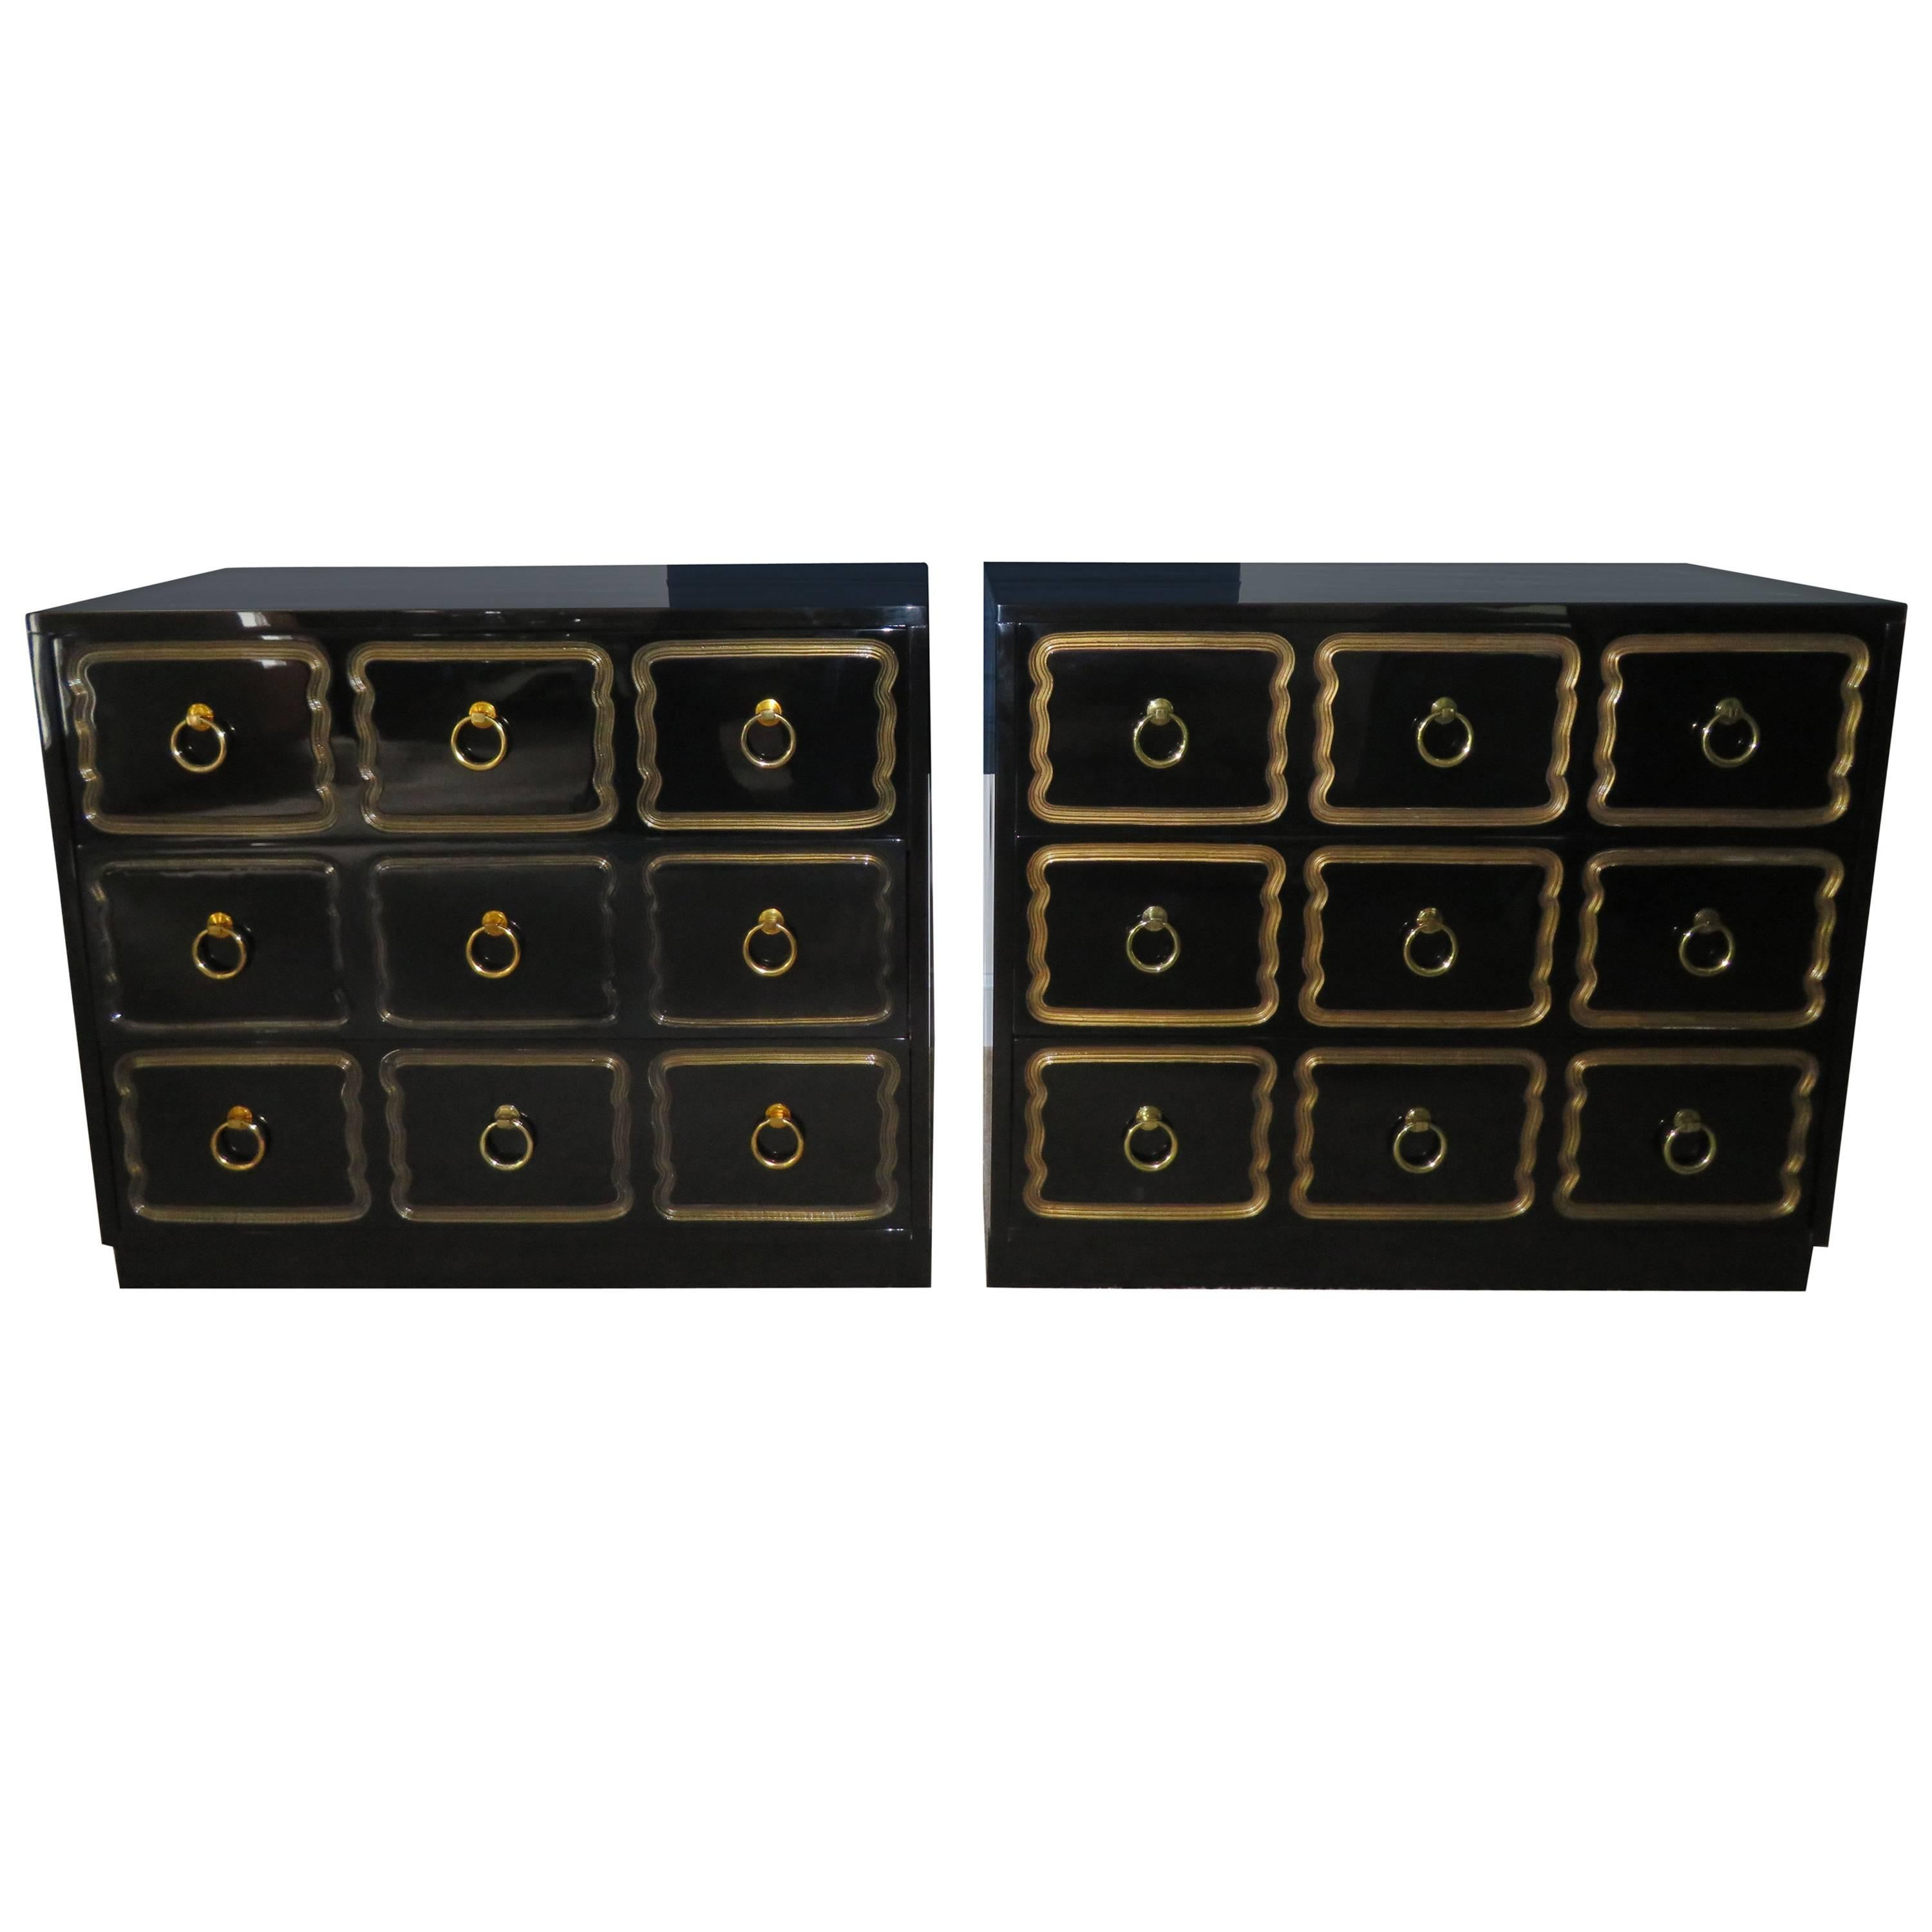 Pair of Hollywood Regency Black Lacquered Espana Dorothy Draper Designed Chests